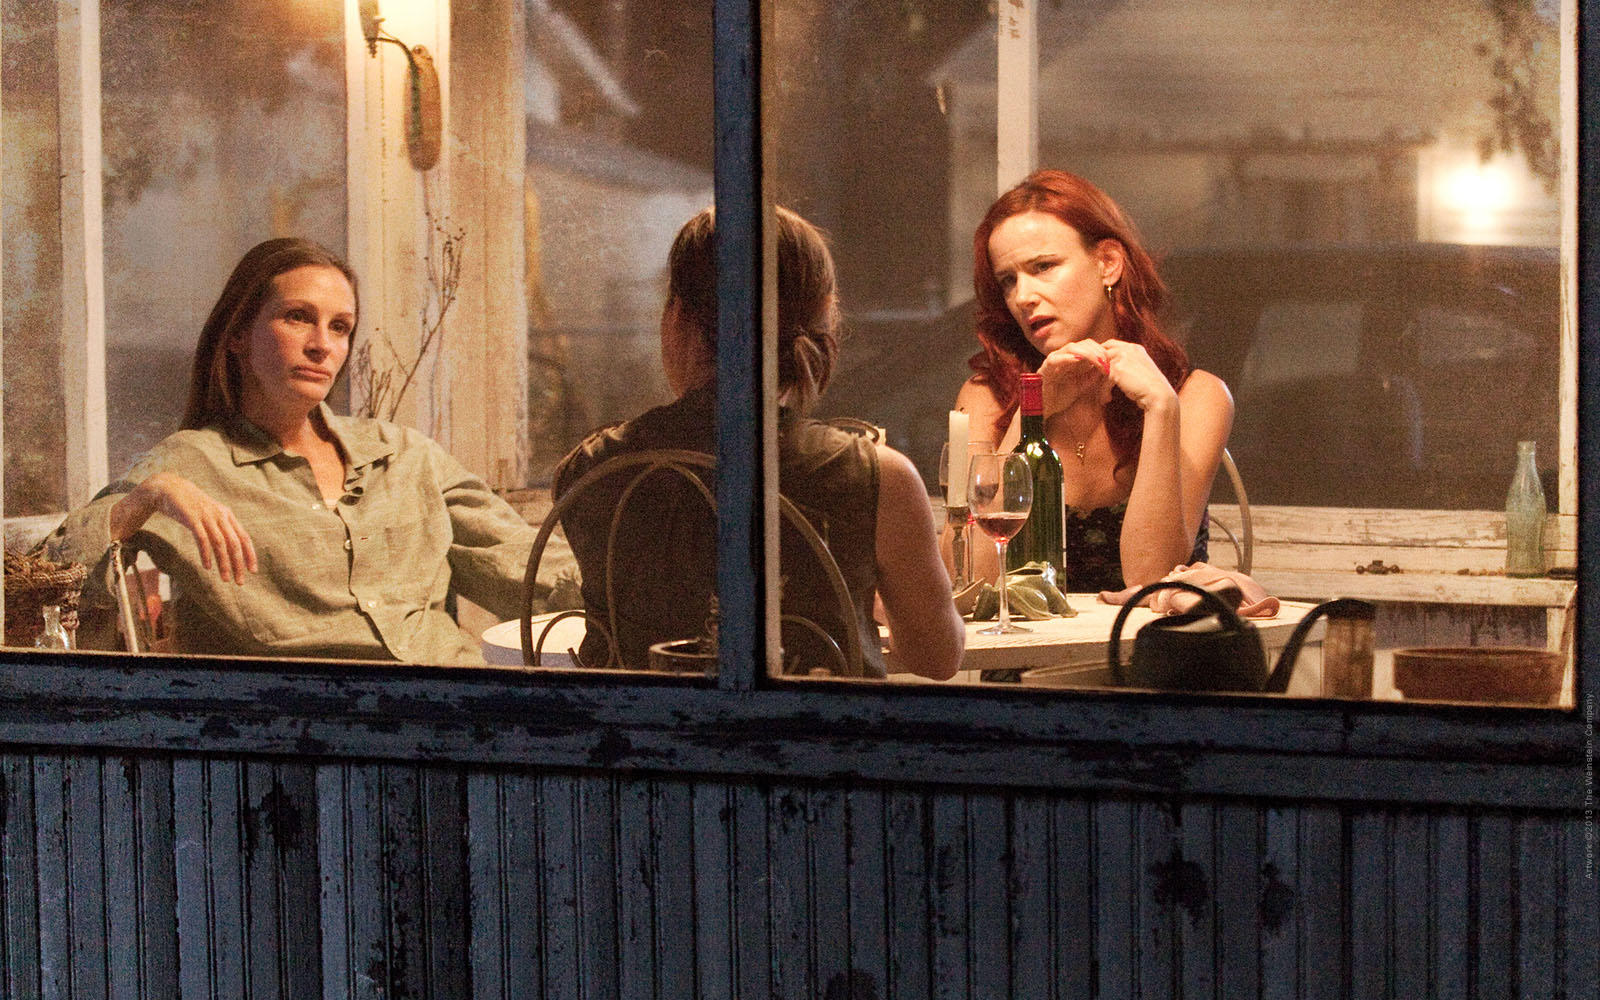 Capitol insider emergency teacher certifications approved cuts august osage county filmed in oklahoma in 2013 xflitez Gallery